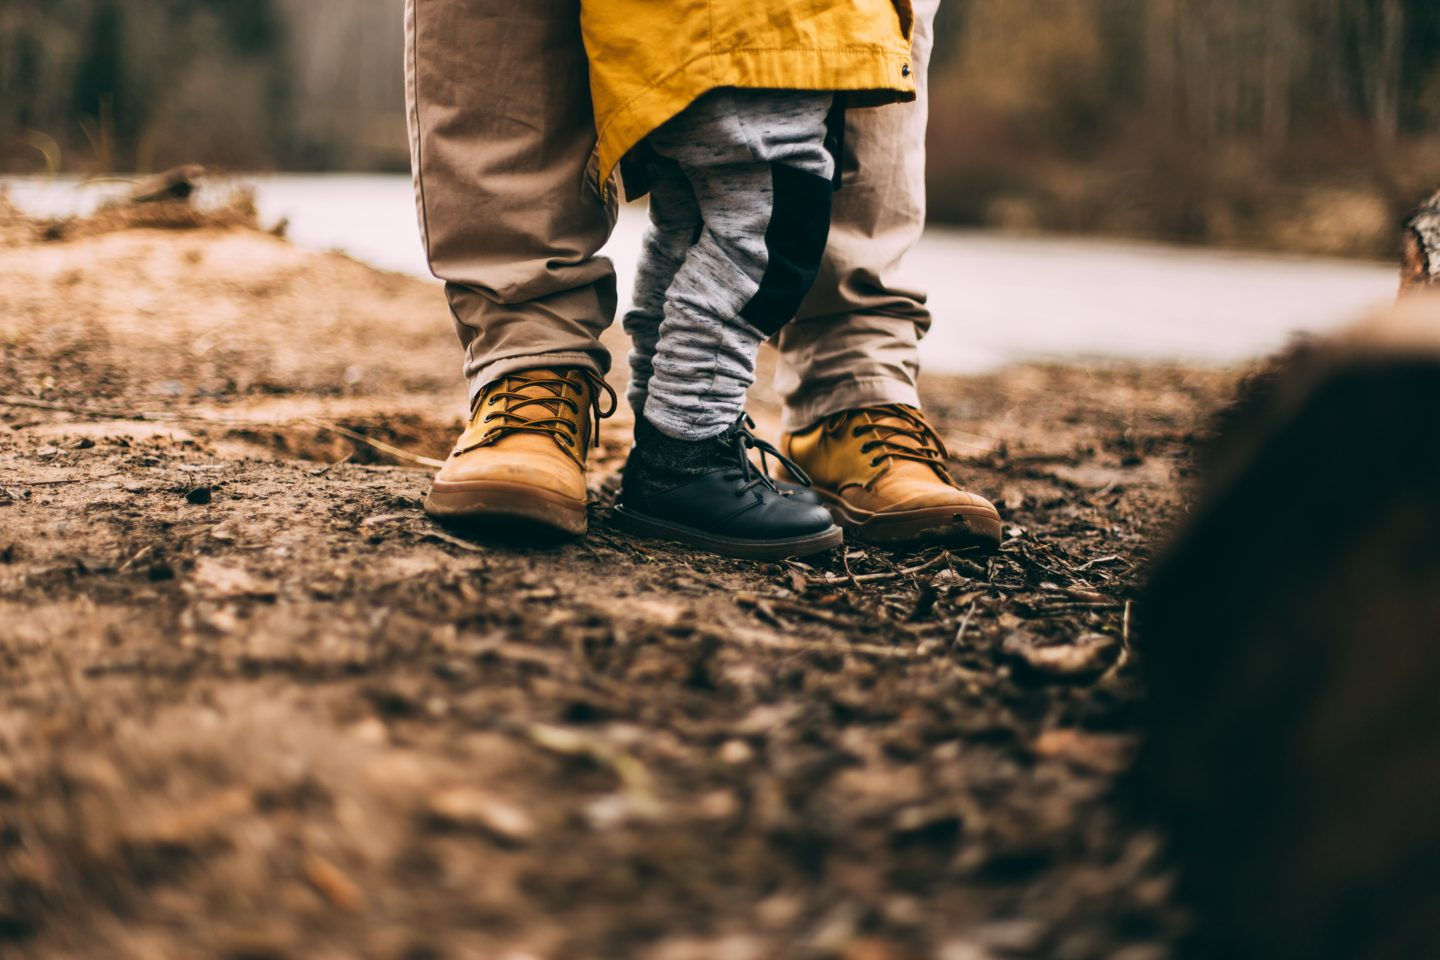 Family Travel Quotes Picture of kids shoes